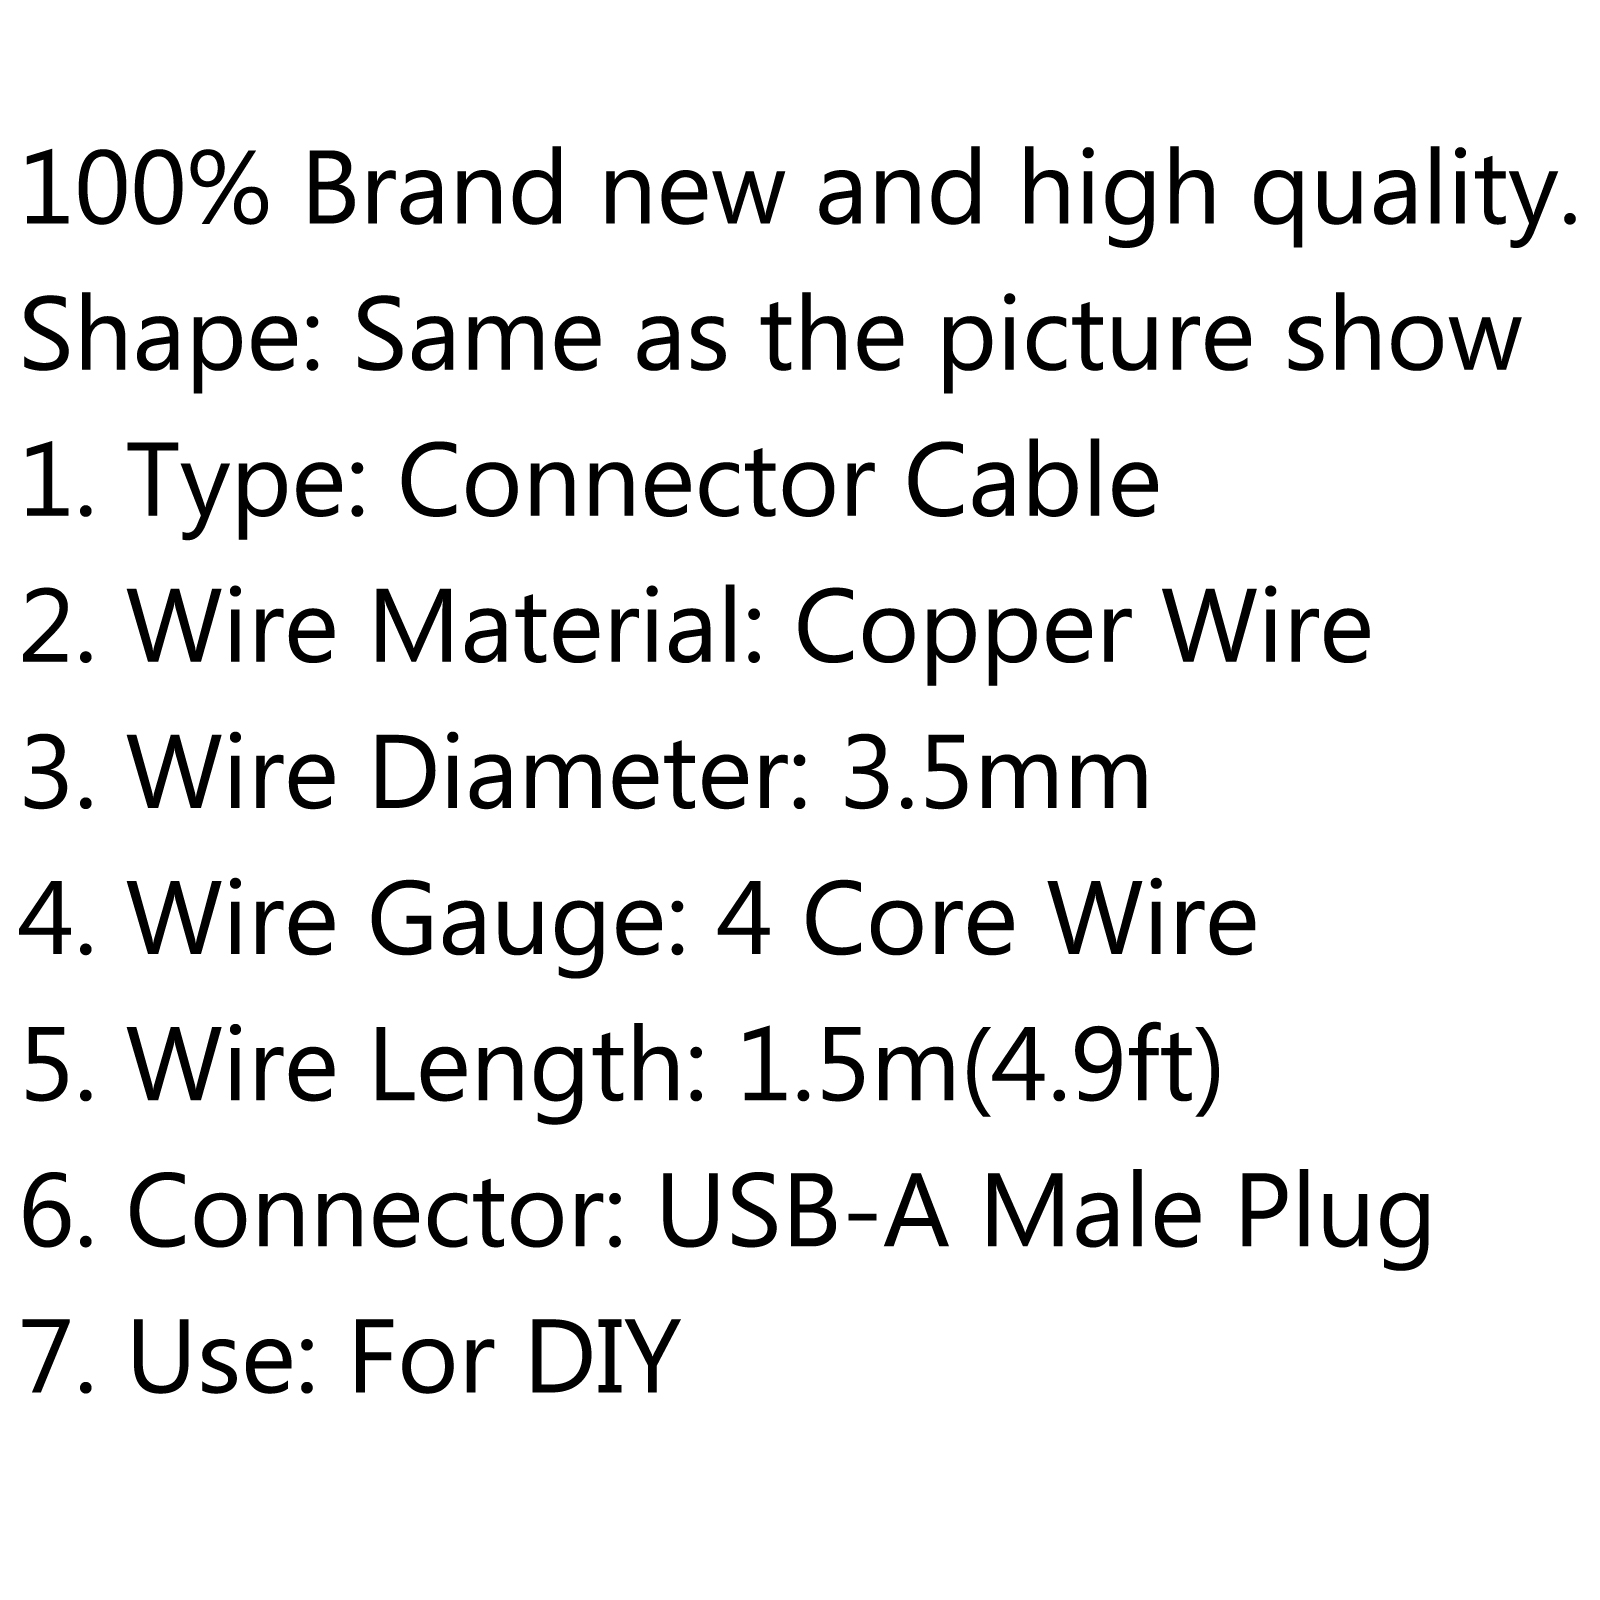 Usb A Male Plug 4 Core Wire Power Adaptor Connector Cable